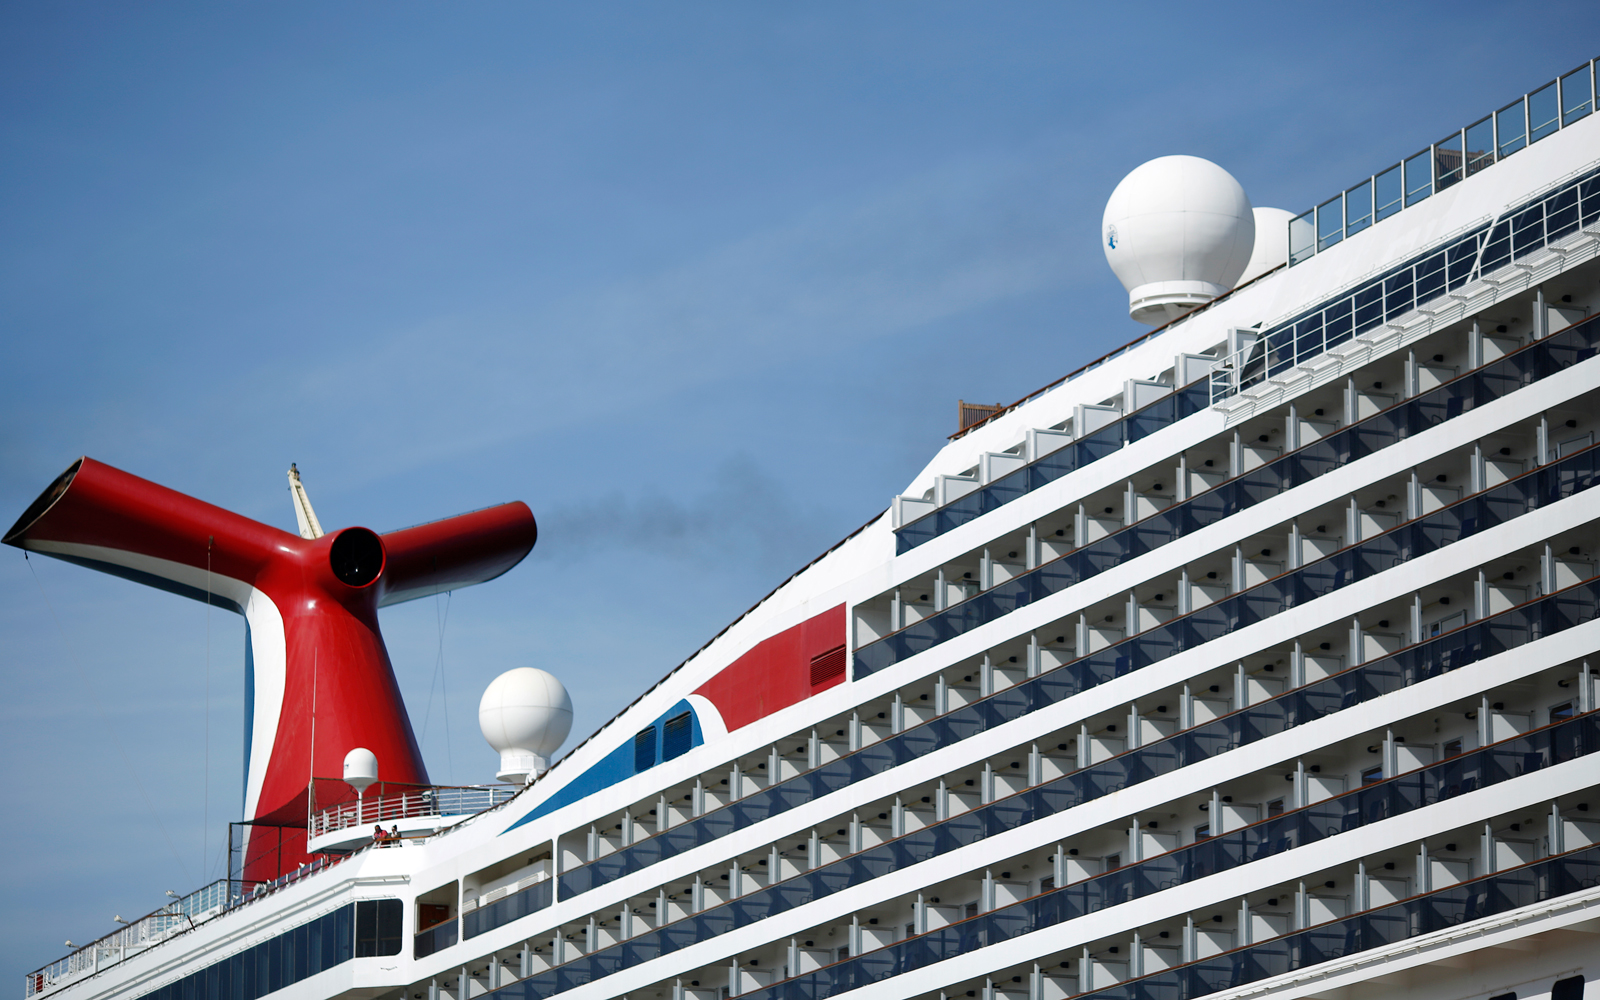 Carnival Traded a Teen a Free Cruise for His Snapchat Handle